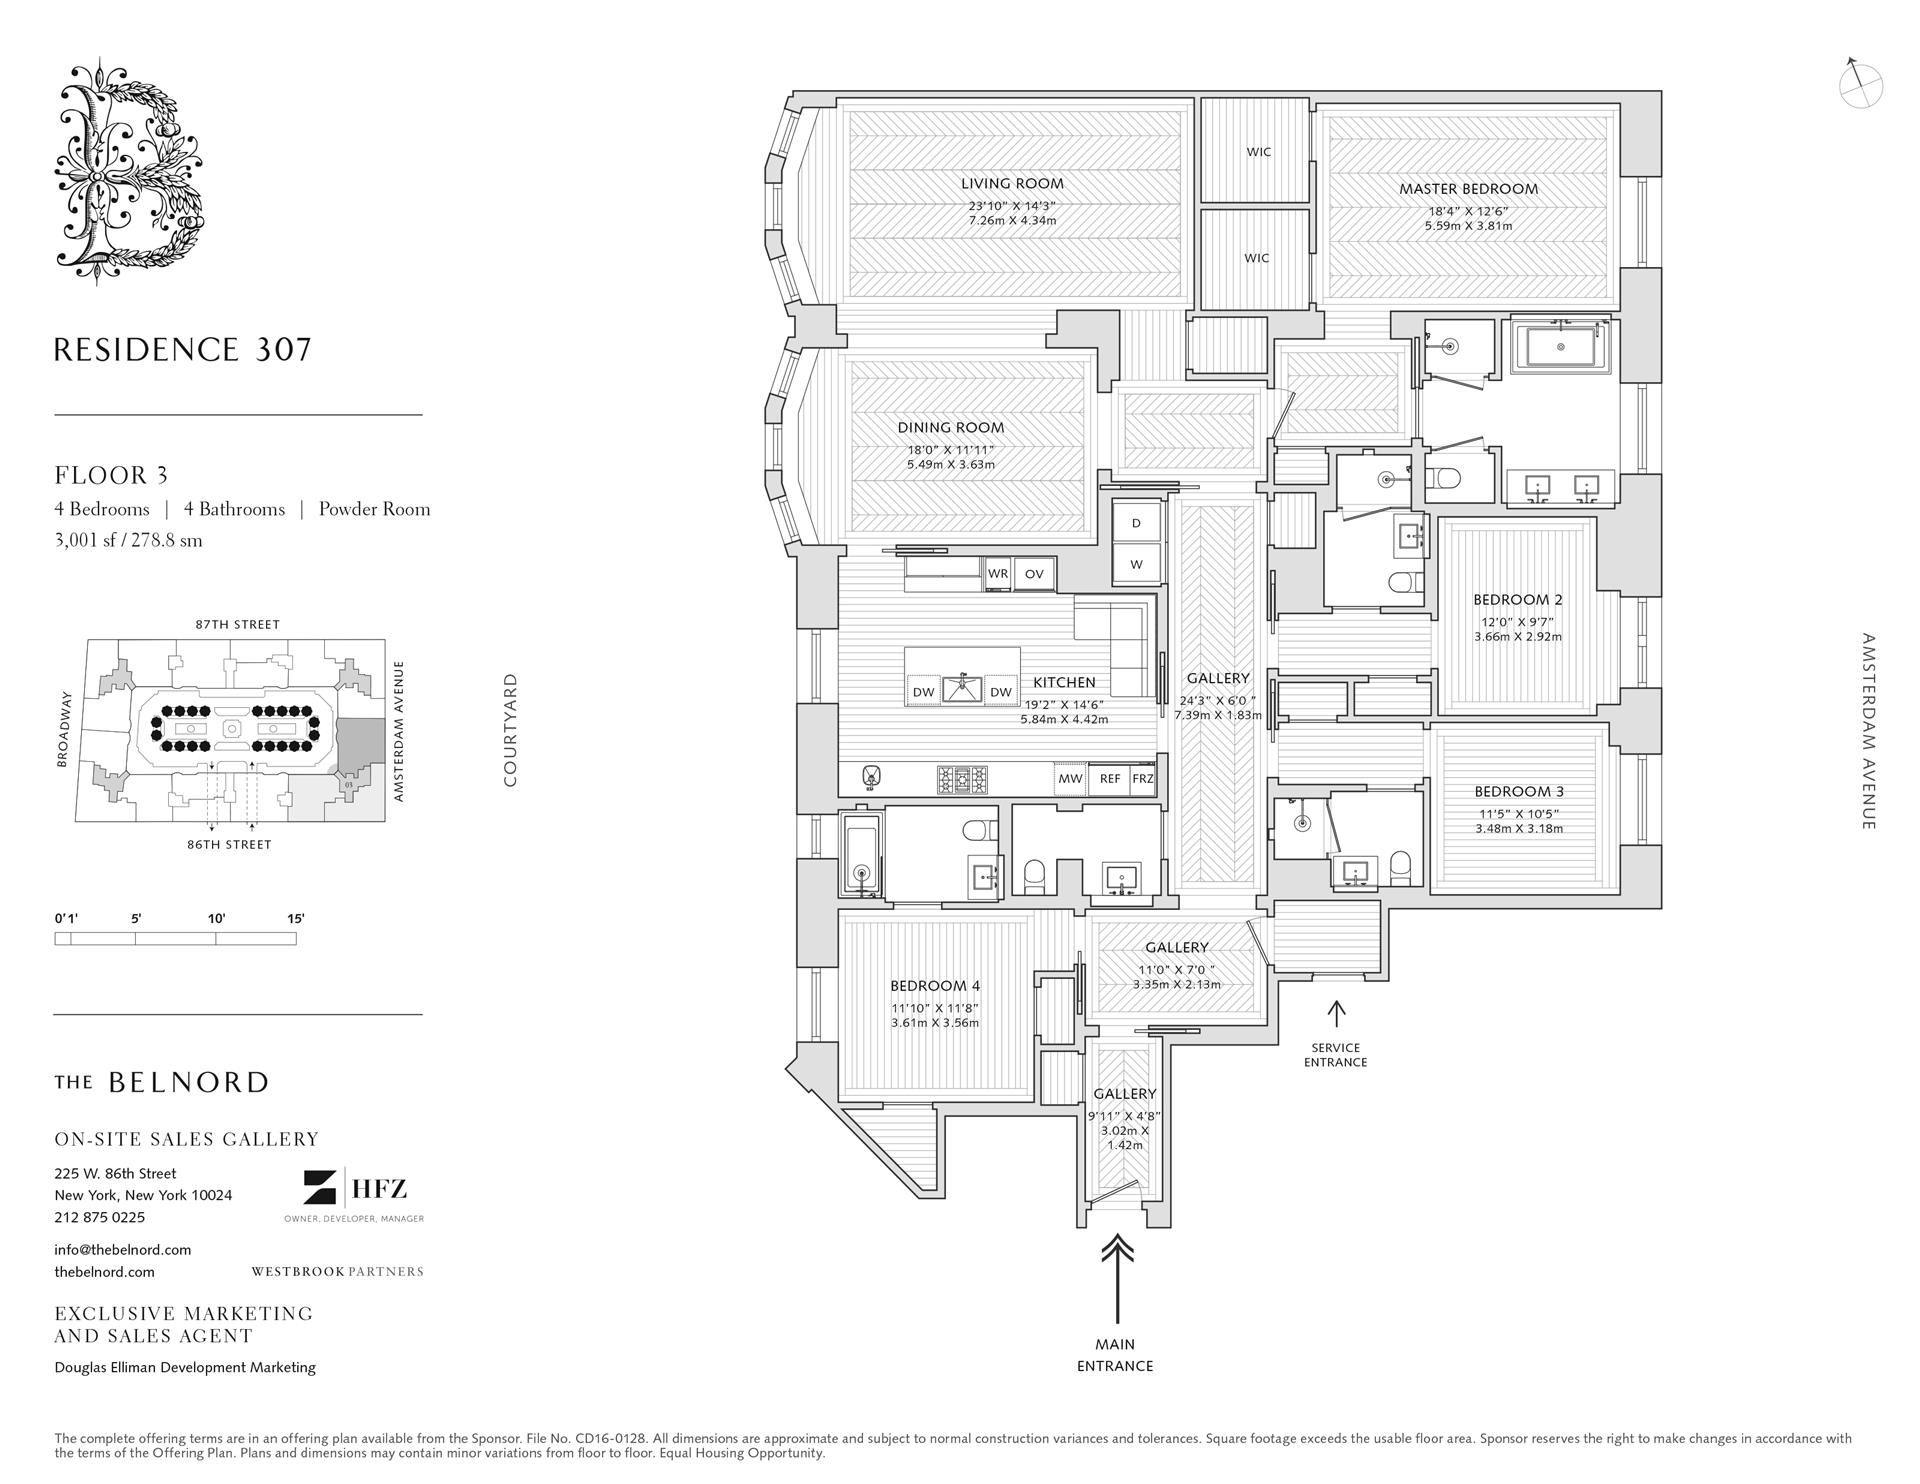 Floor plan of The Belnord, 225 West 86th St, 307 - Upper West Side, New York